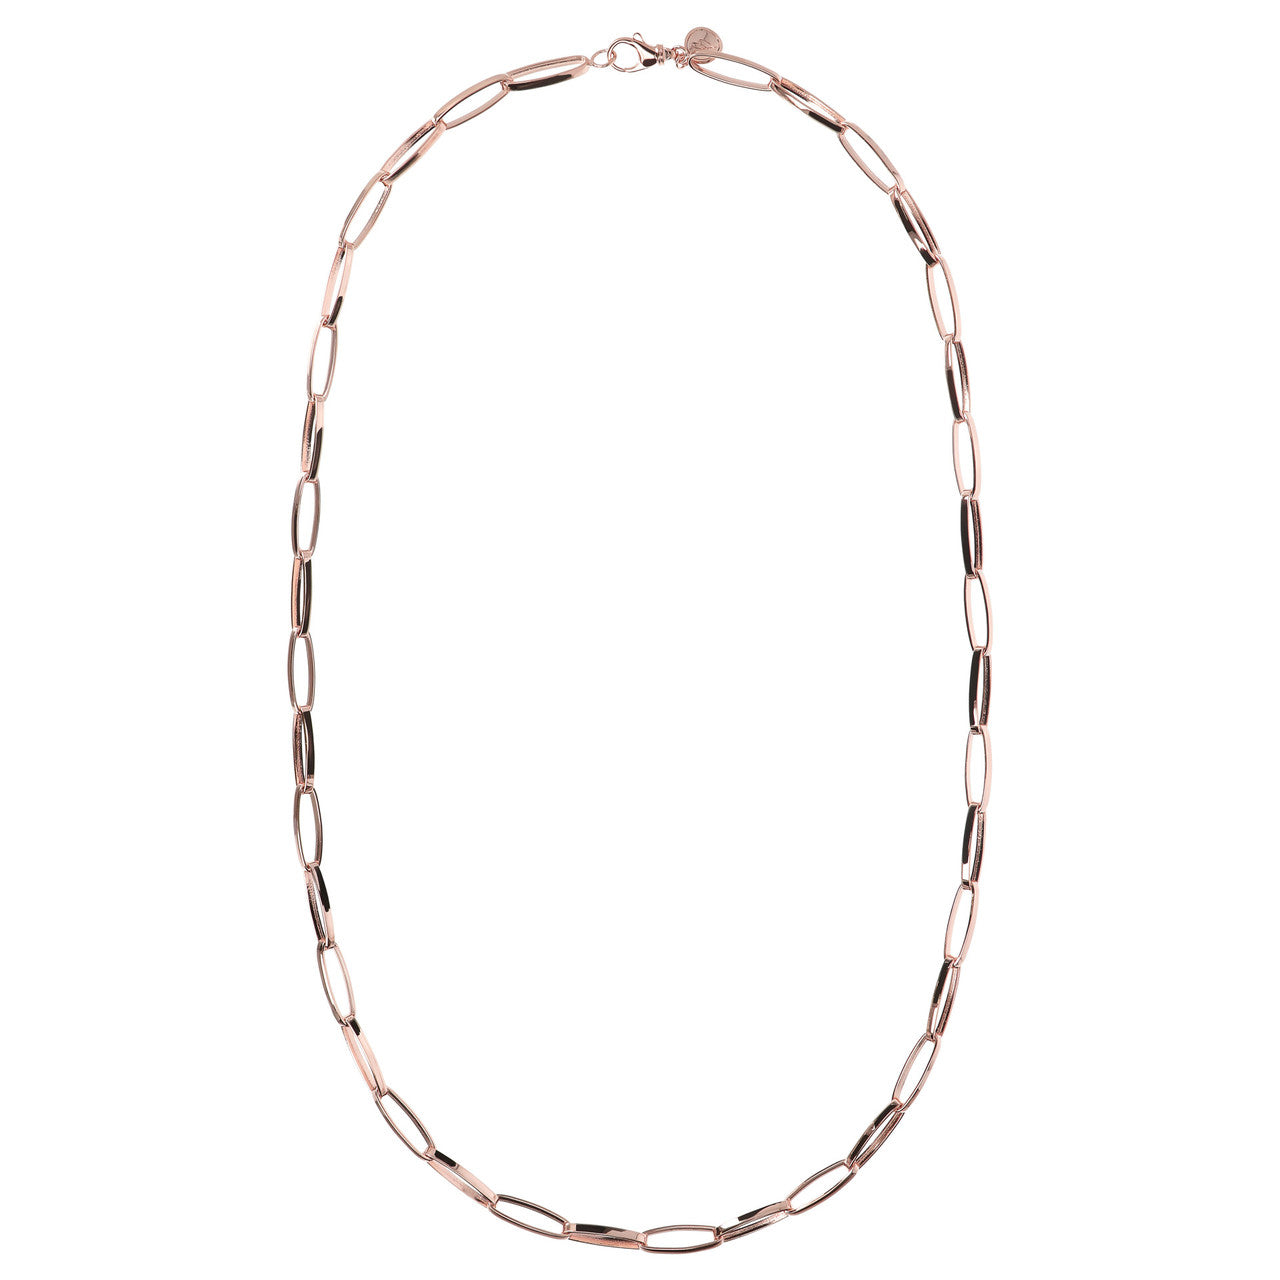 Polished Oval Link Necklace